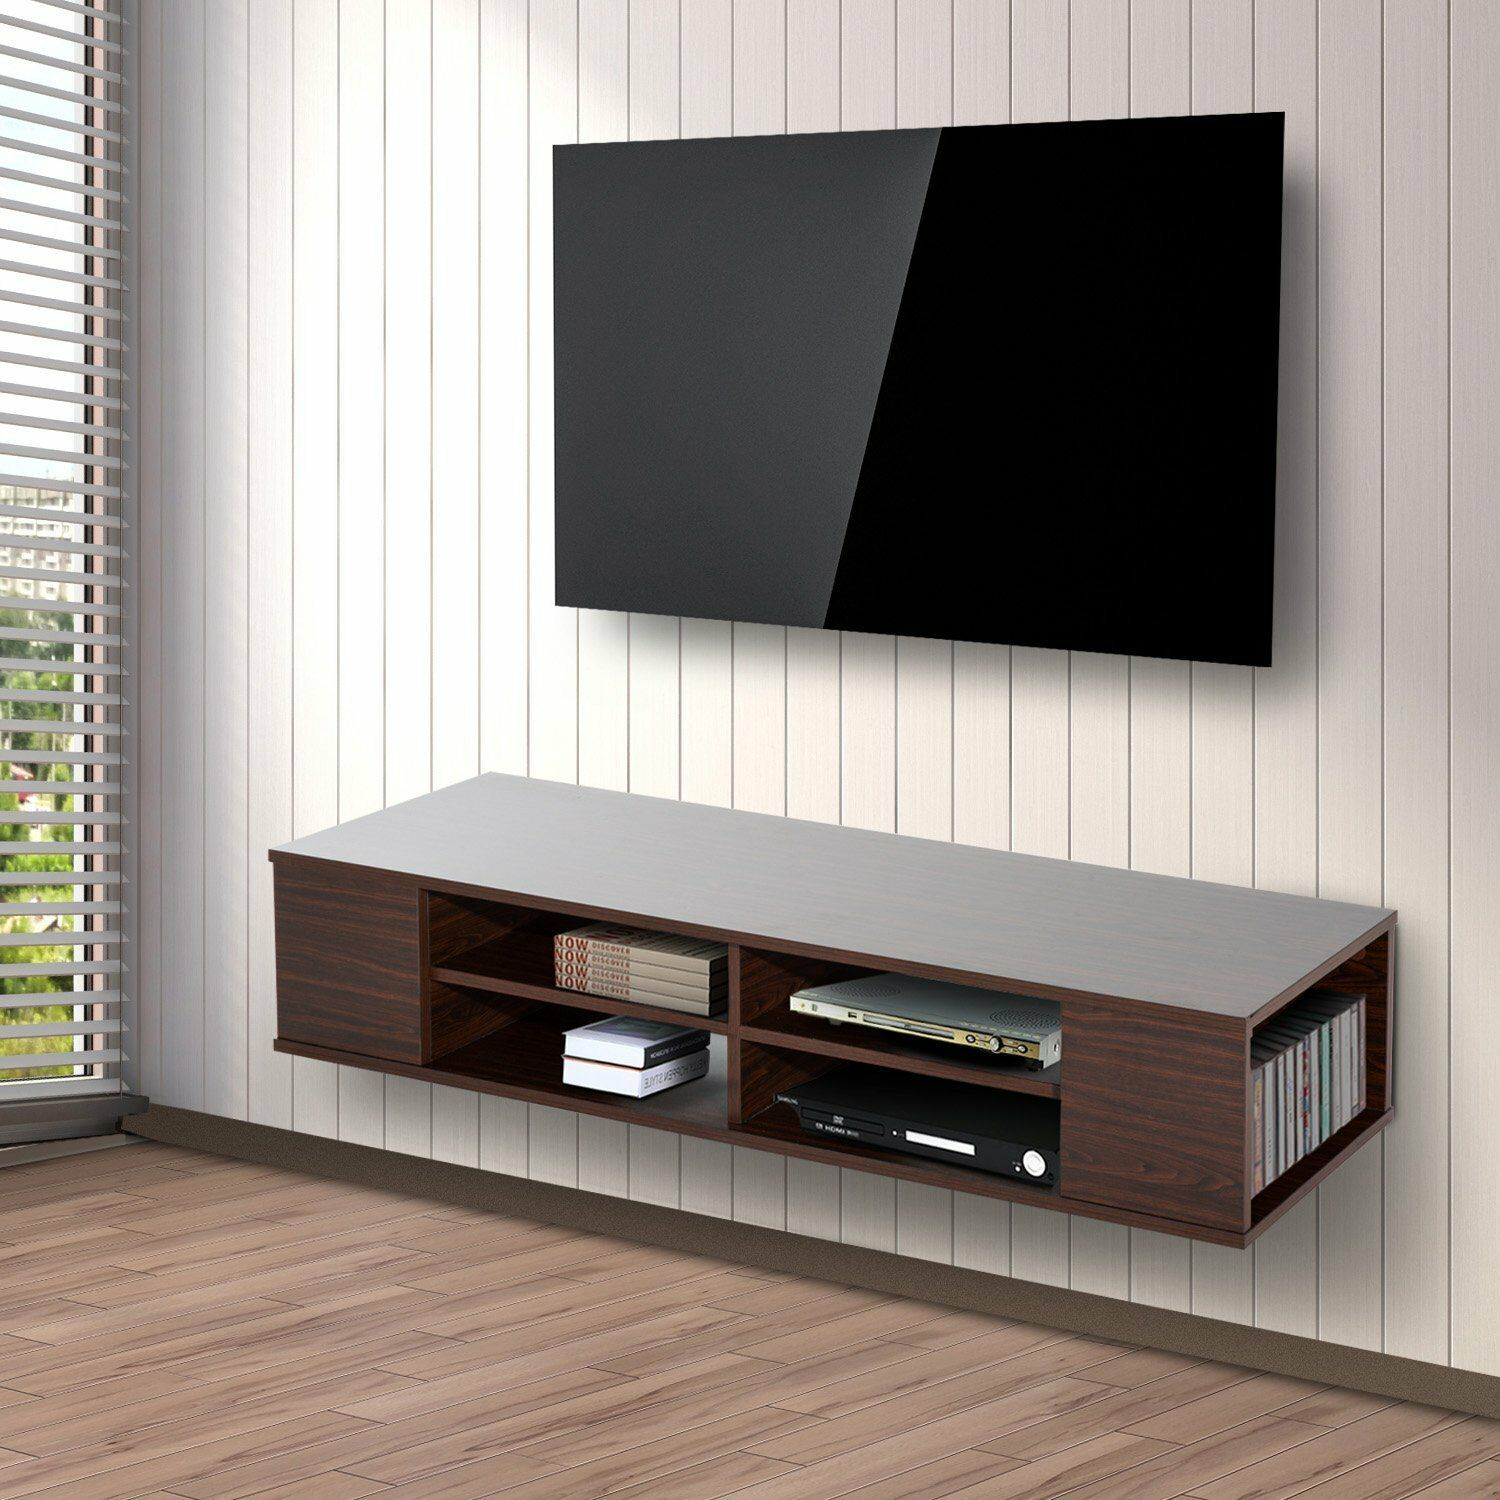 Fullsize Of Wall Mounted Entertainment Center